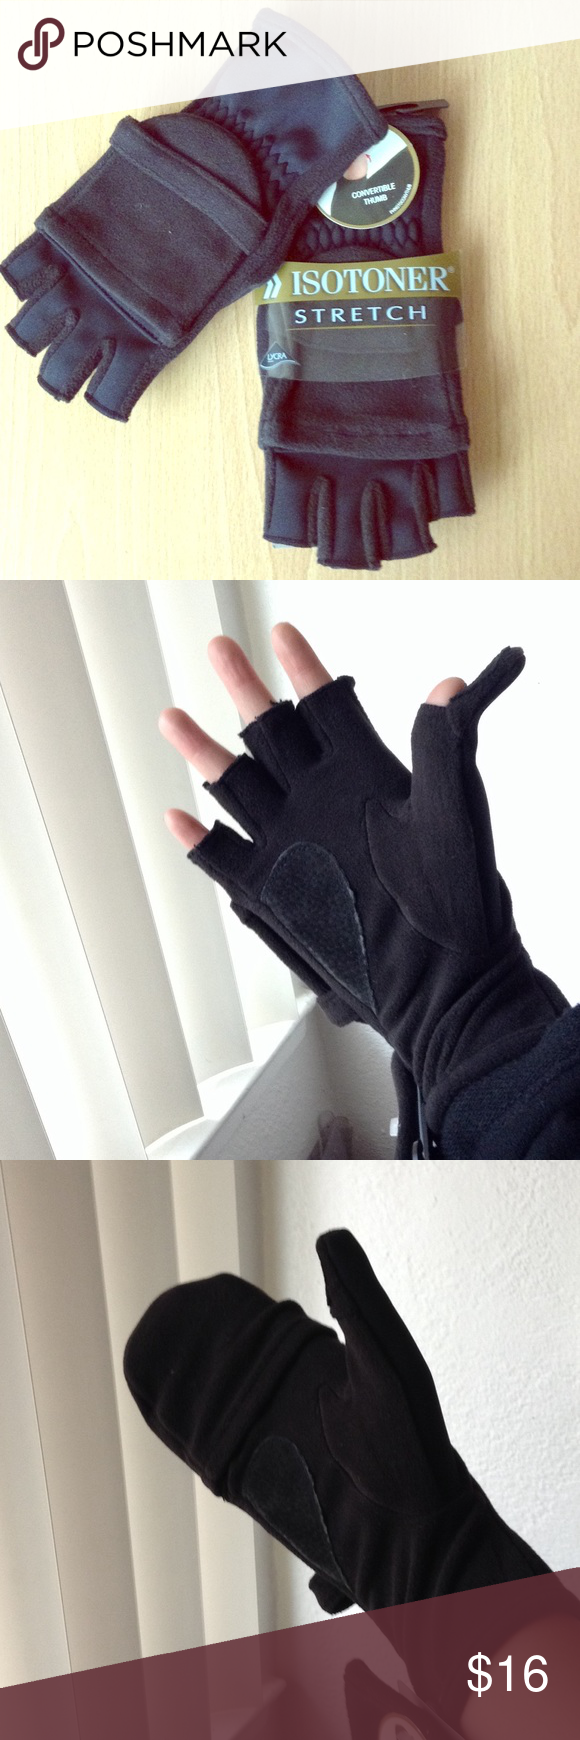 Isotoner Stretch Gloves NWT. Can be used as fingerless gloves or as mittens. One size. Isotoner Accessories Gloves & Mittens